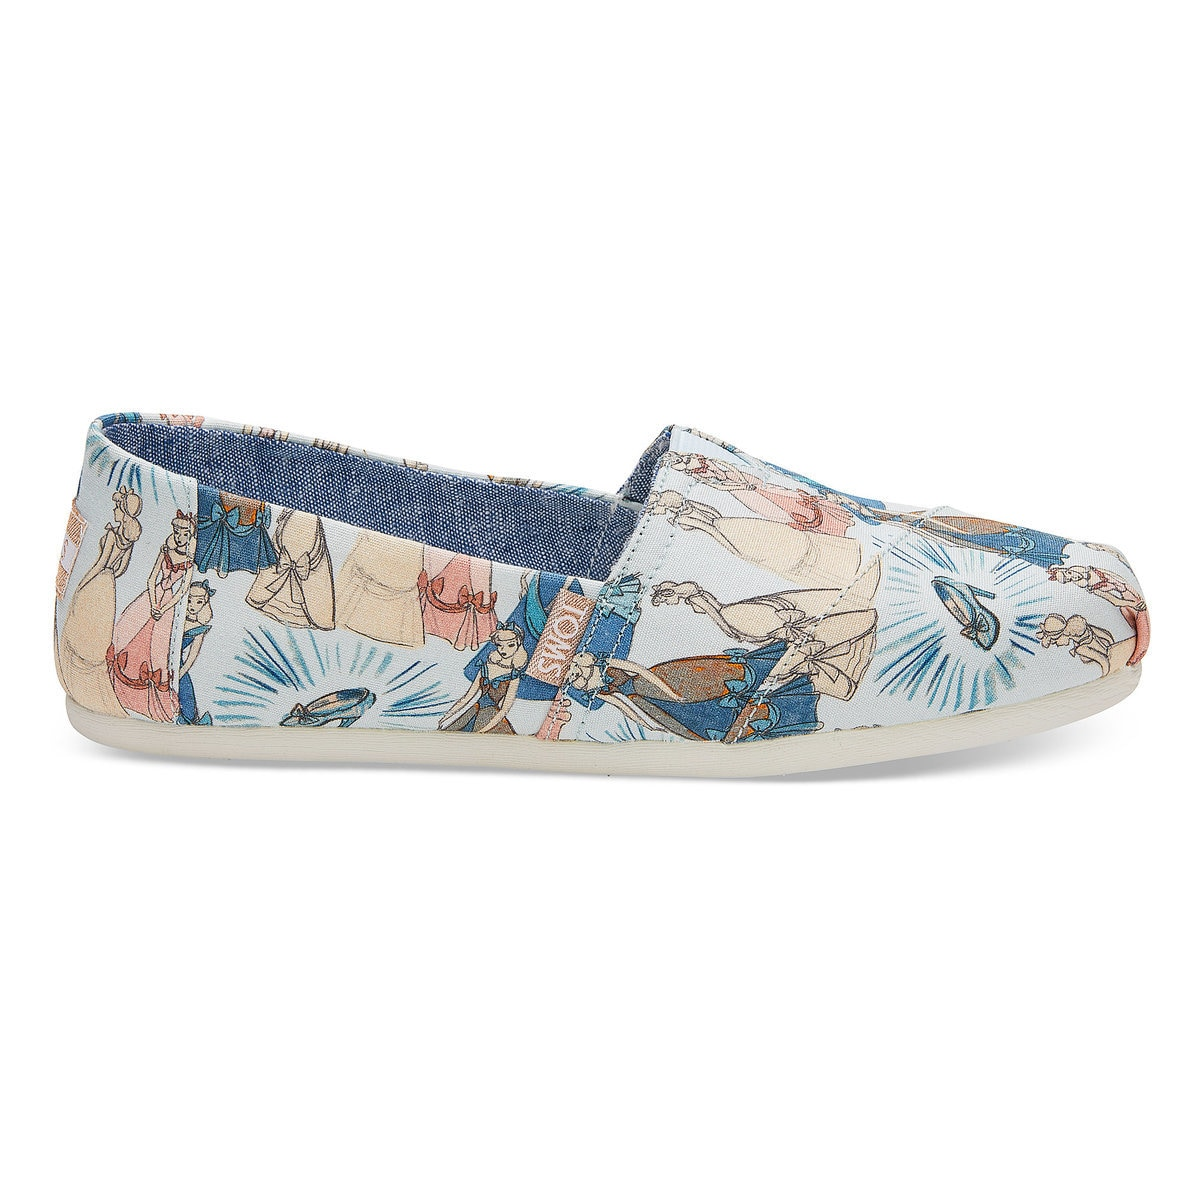 53f952890e9 Product Image of Cinderella Alpargatas Shoes for Women by TOMS   1